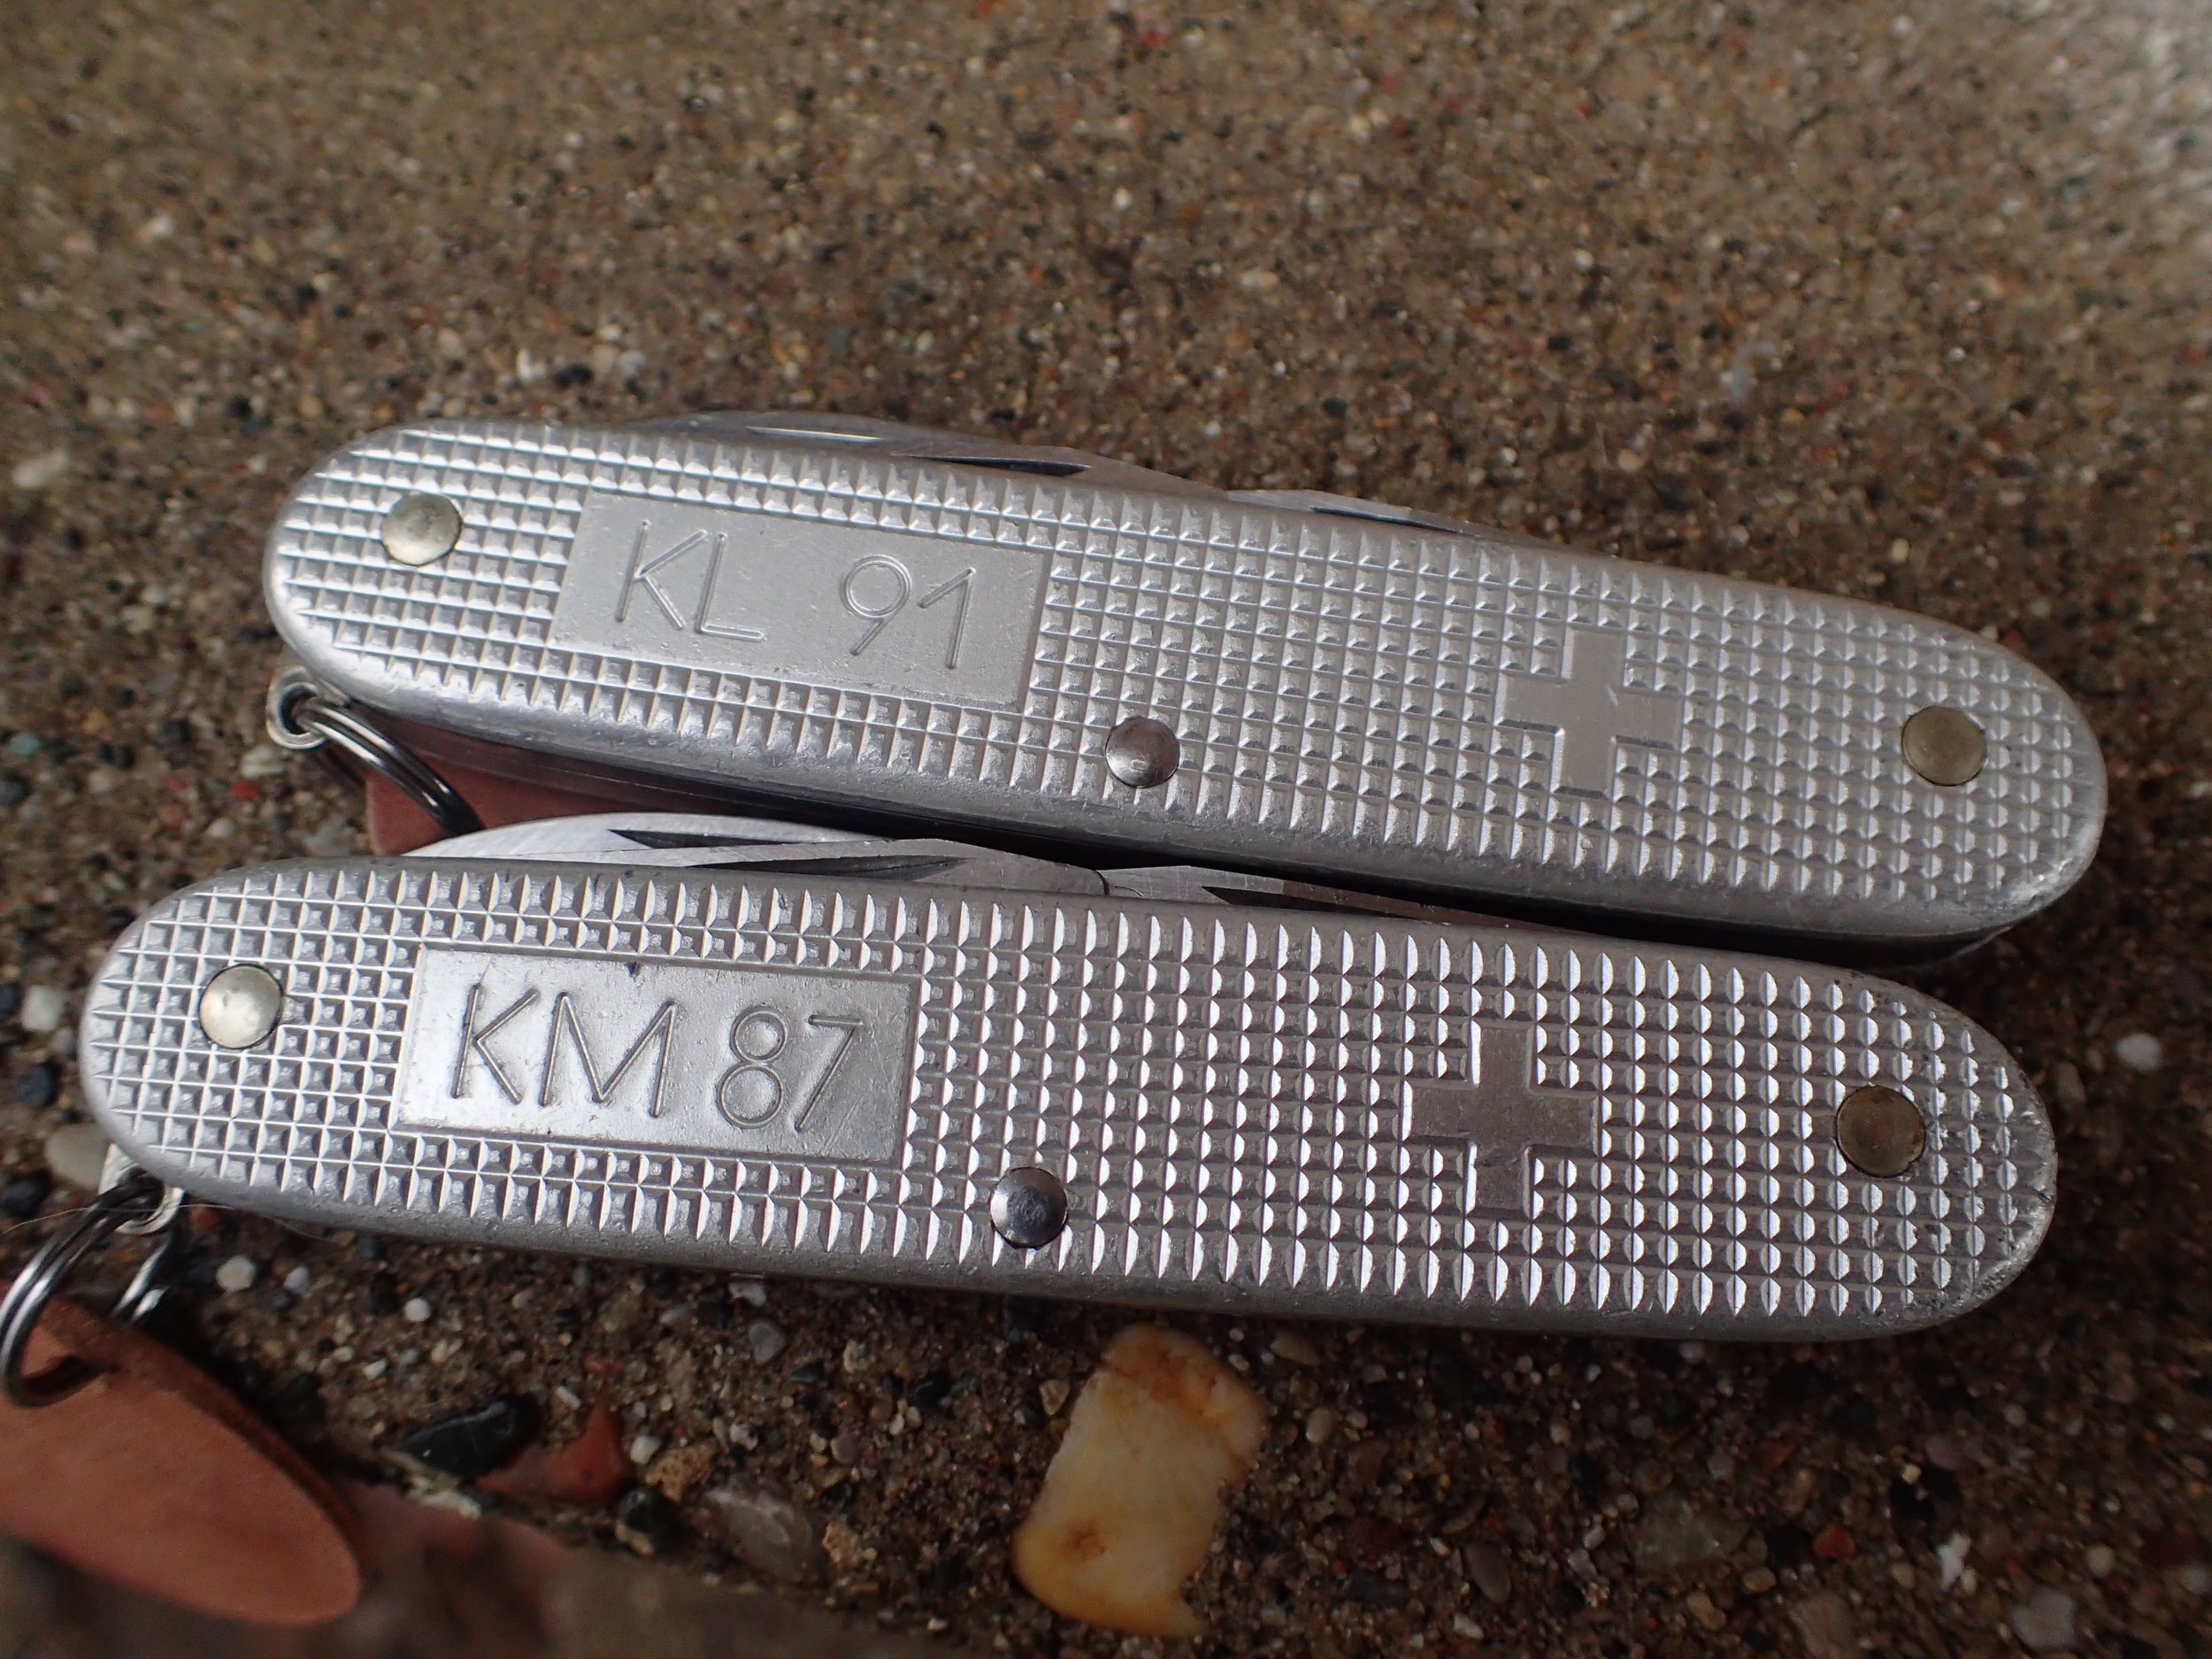 Dutch Royal Army Knife from 1991 (top) and rare Royal Navy Knife from 1987.